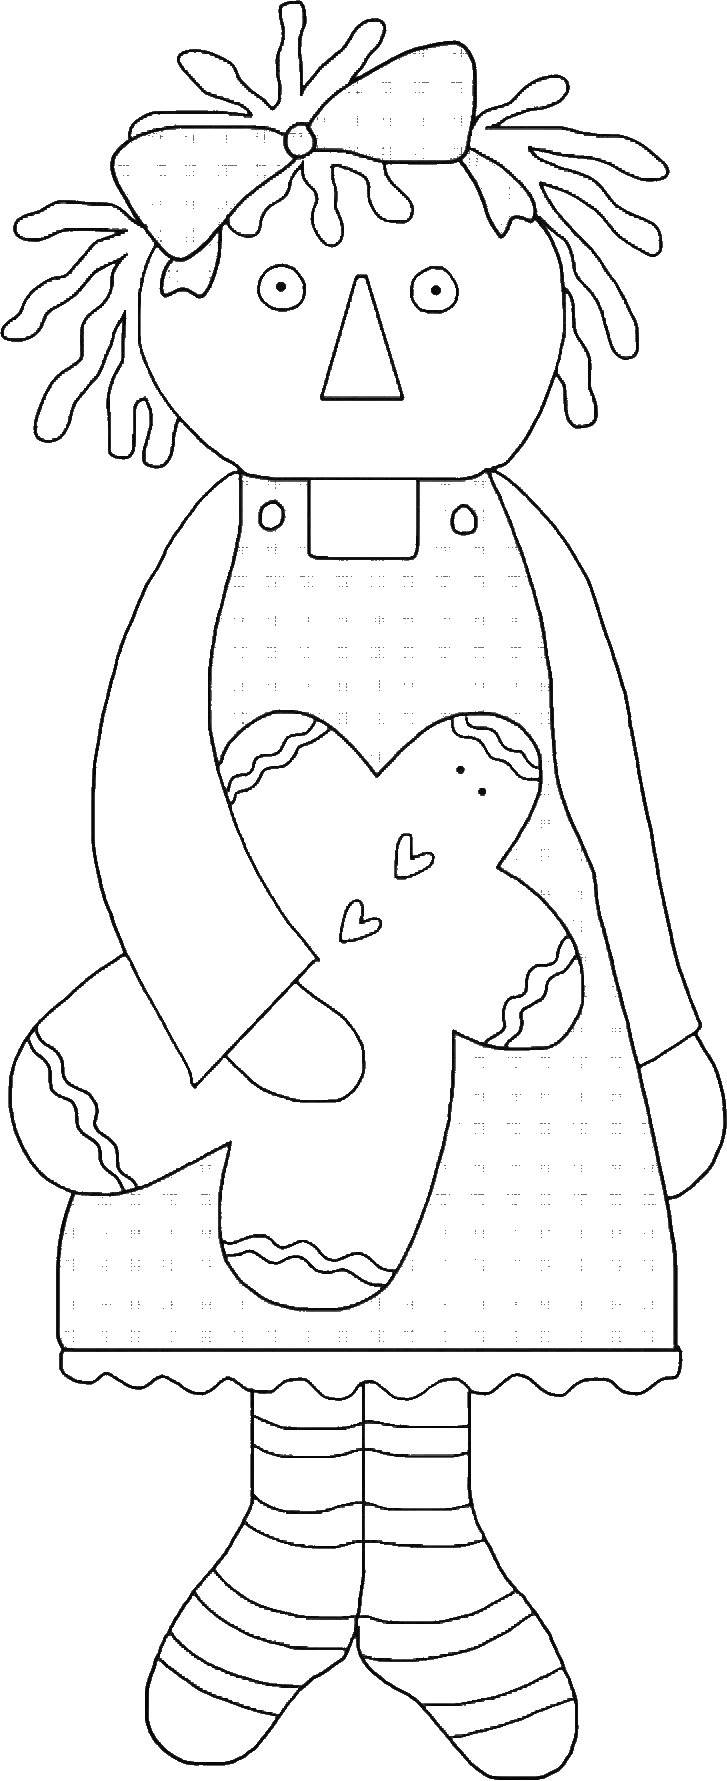 Adorable Raggedy Ann with Gingerbread Man Template - Clip Art